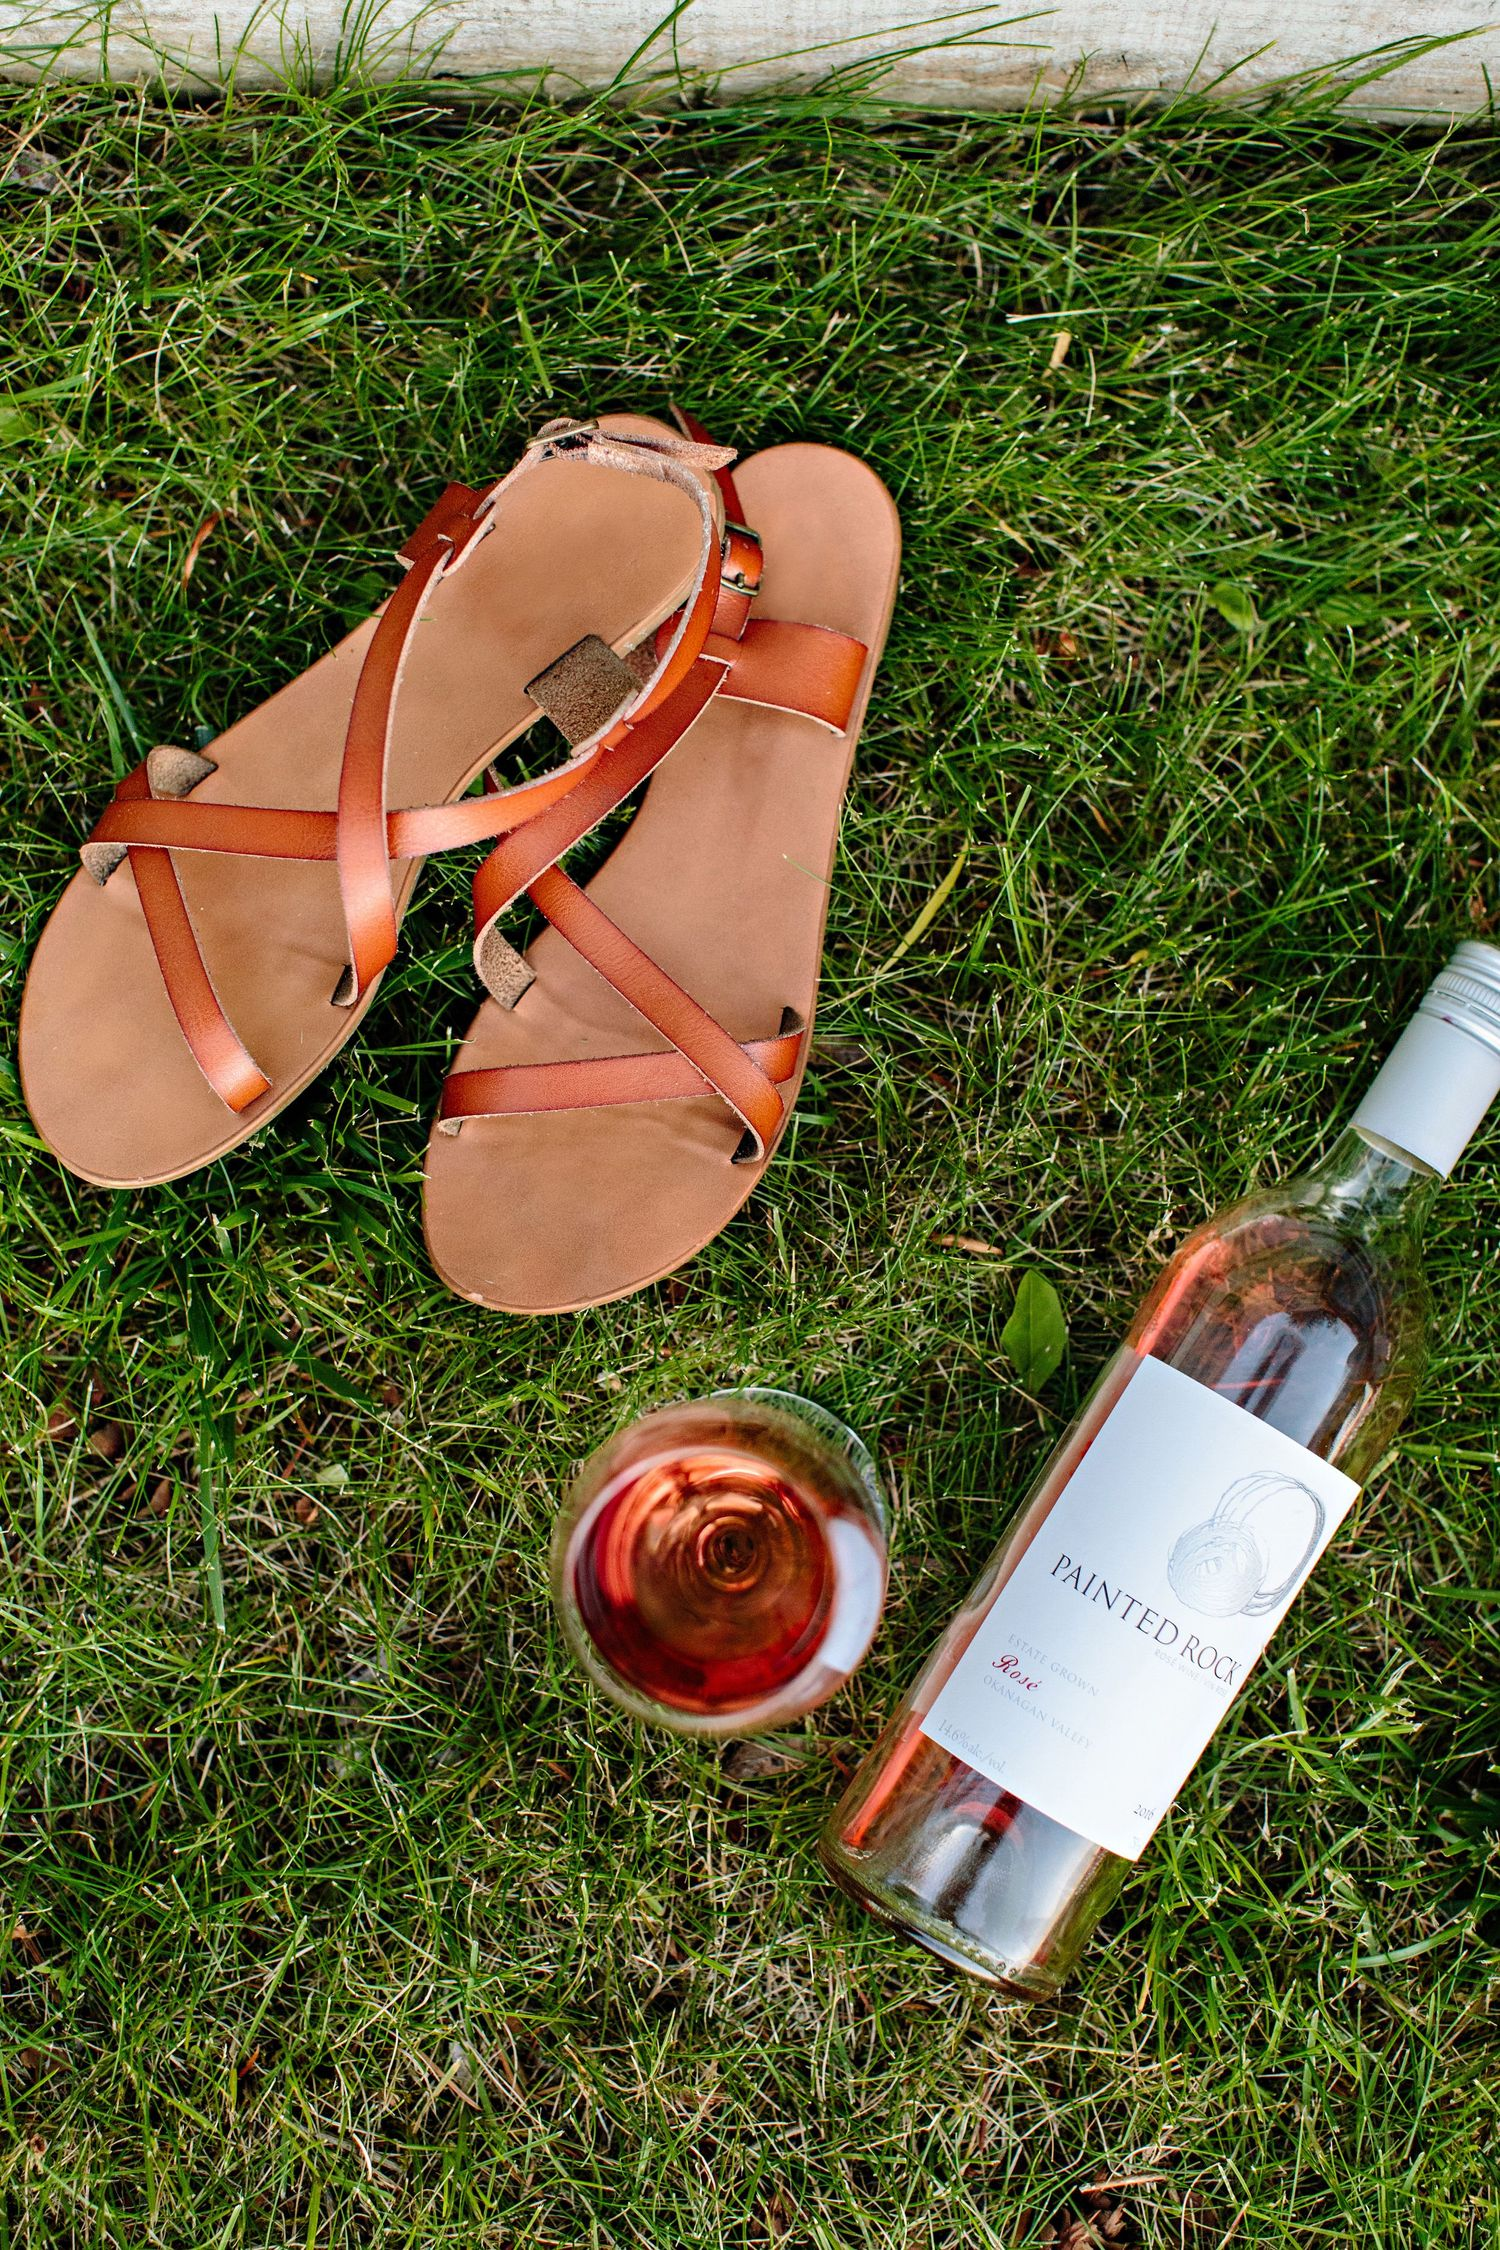 sandals and rose wine